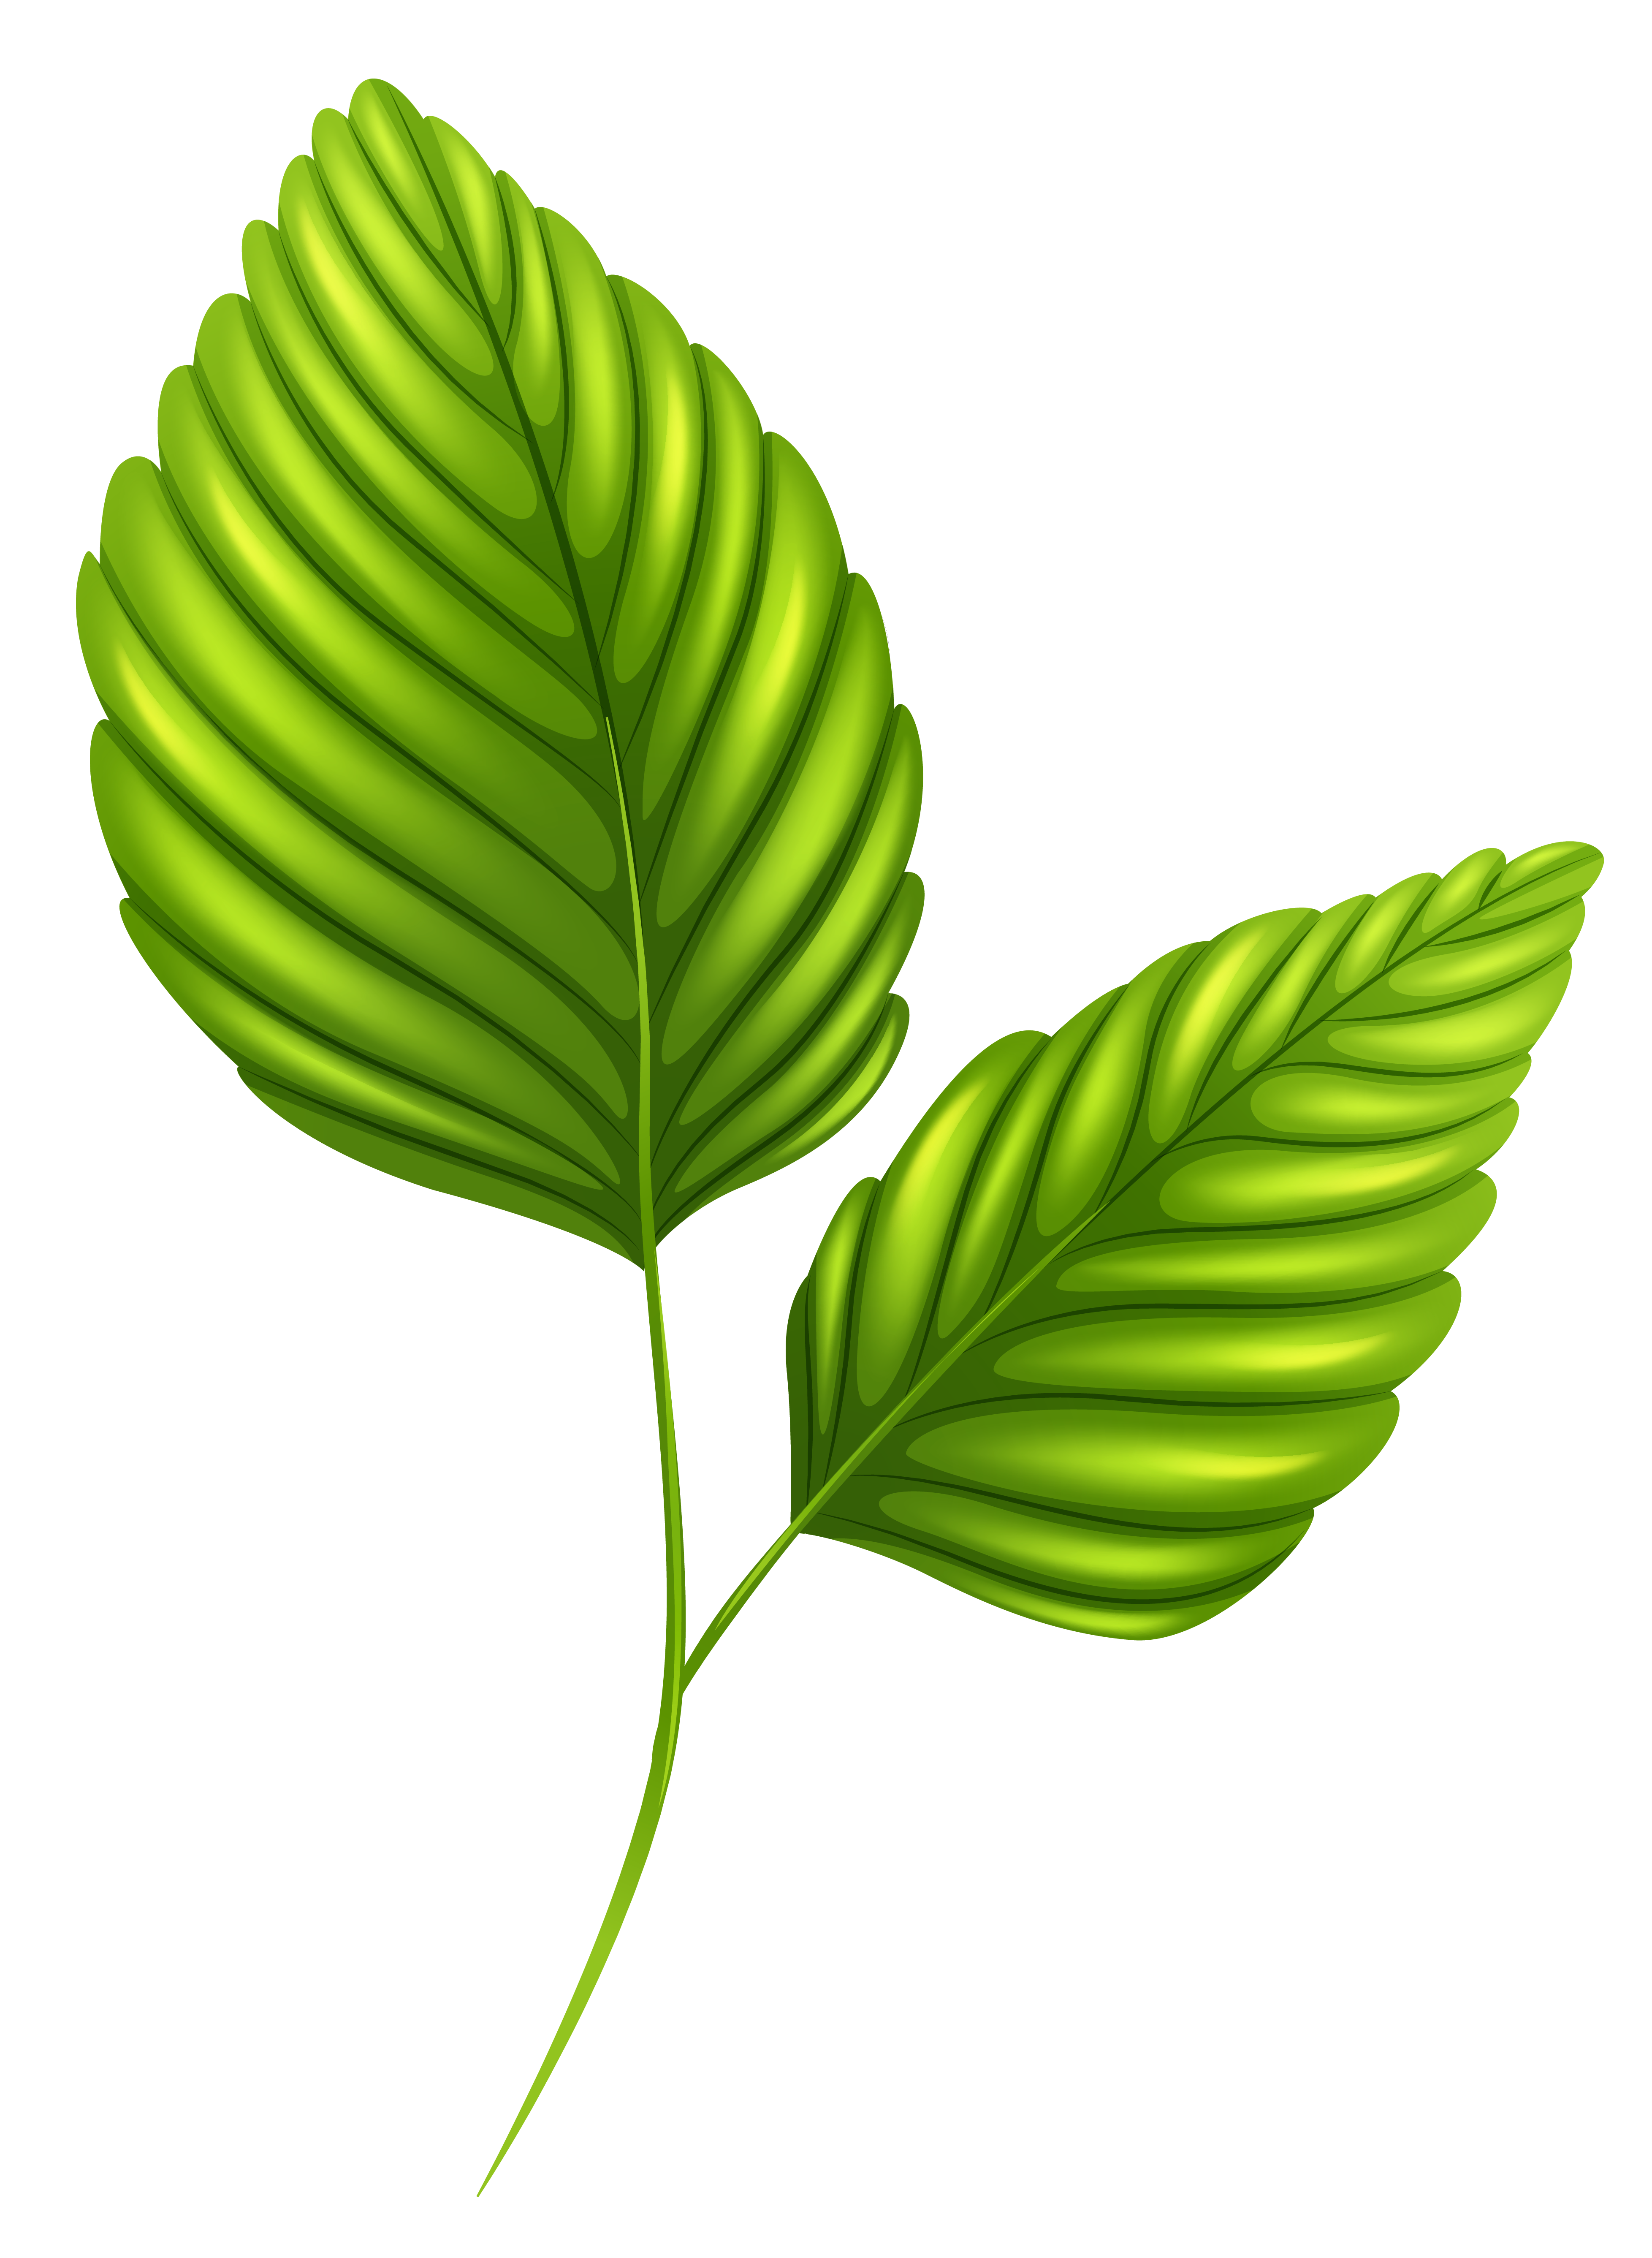 Two Green Leaves PNG Clipart Image.